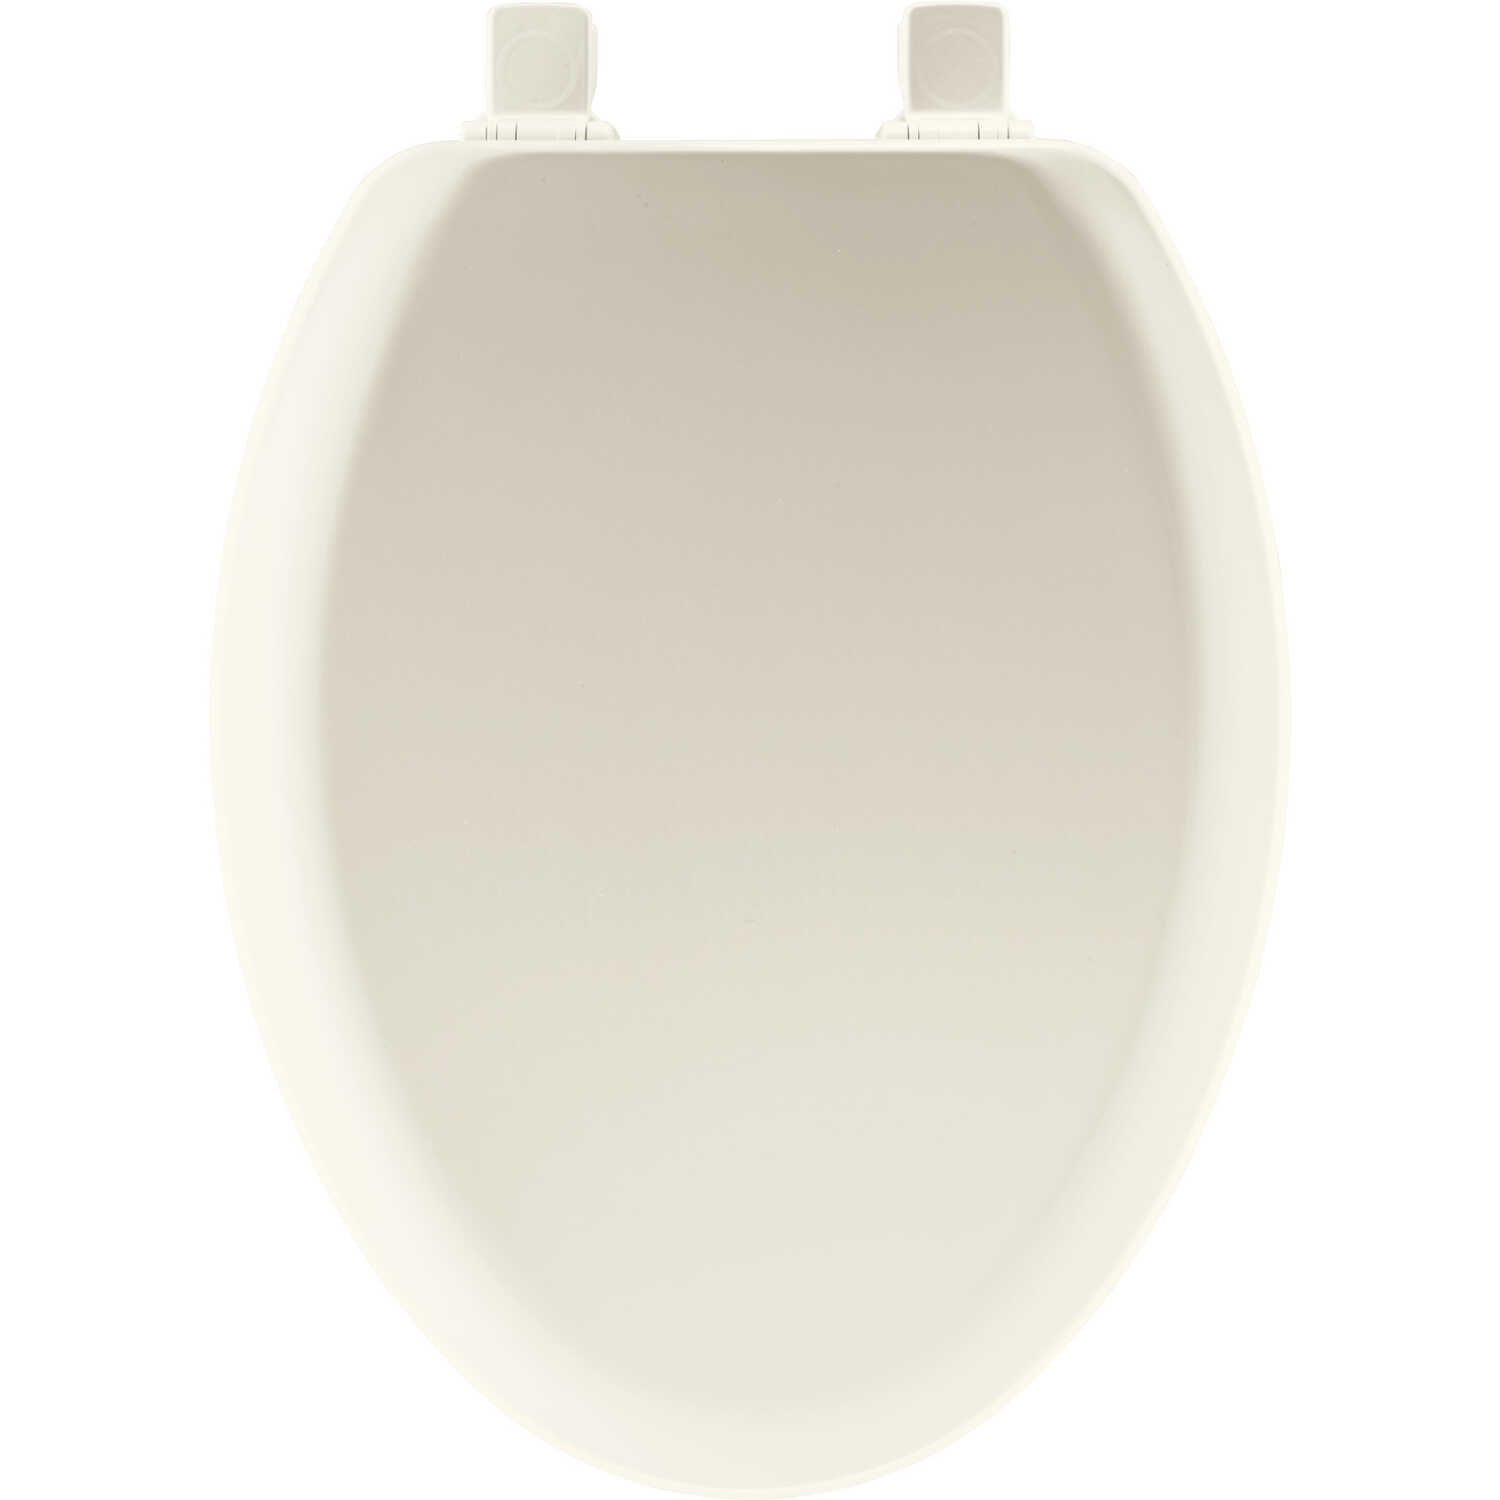 Mayfair Elongated Biscuit Molded Wood Toilet Seat Ace